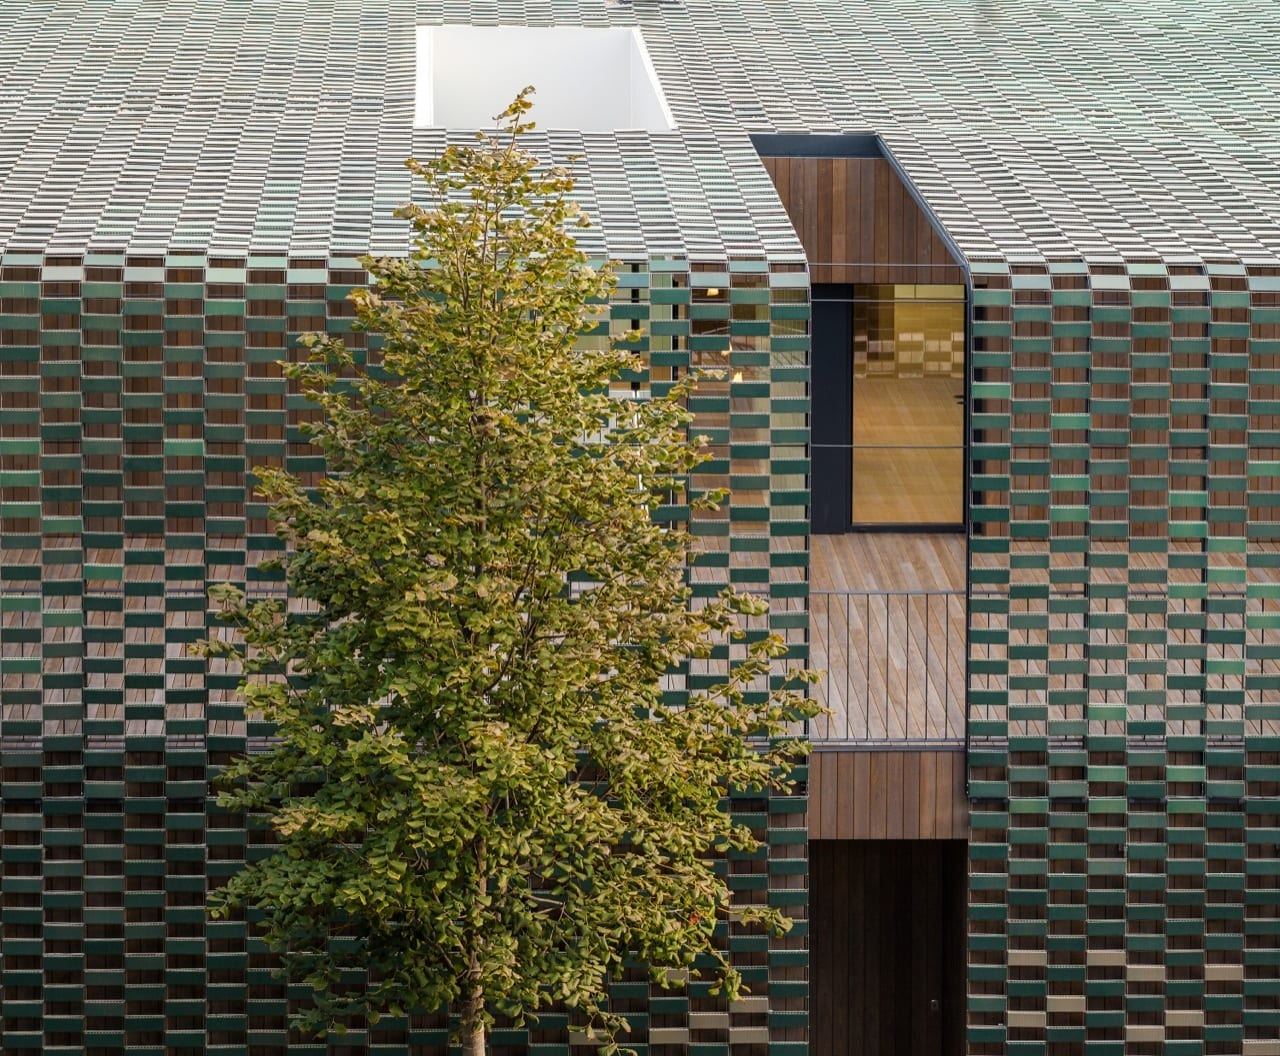 Tr House in Barcelona by Pmmt | Yellowtrace